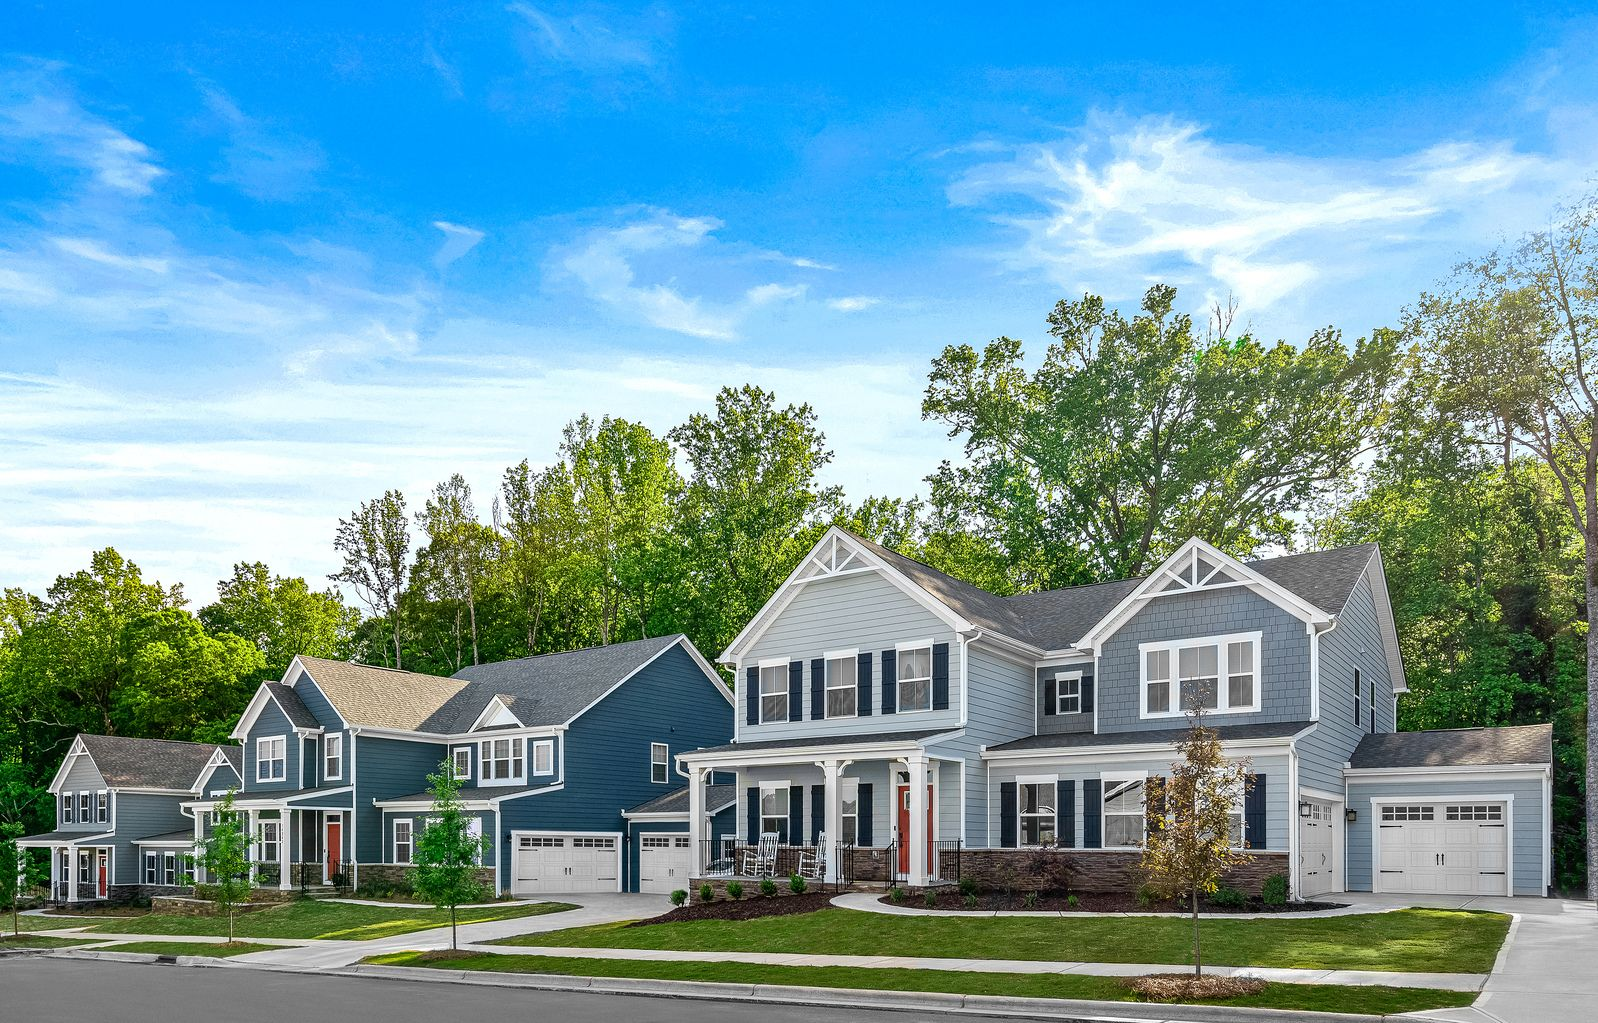 LIMITED HOMESITES ARE BEING RELEASED EVERY MONTH:Join the VIP listto be notified when new homesites are released in this sought-after community! From the low $500s.